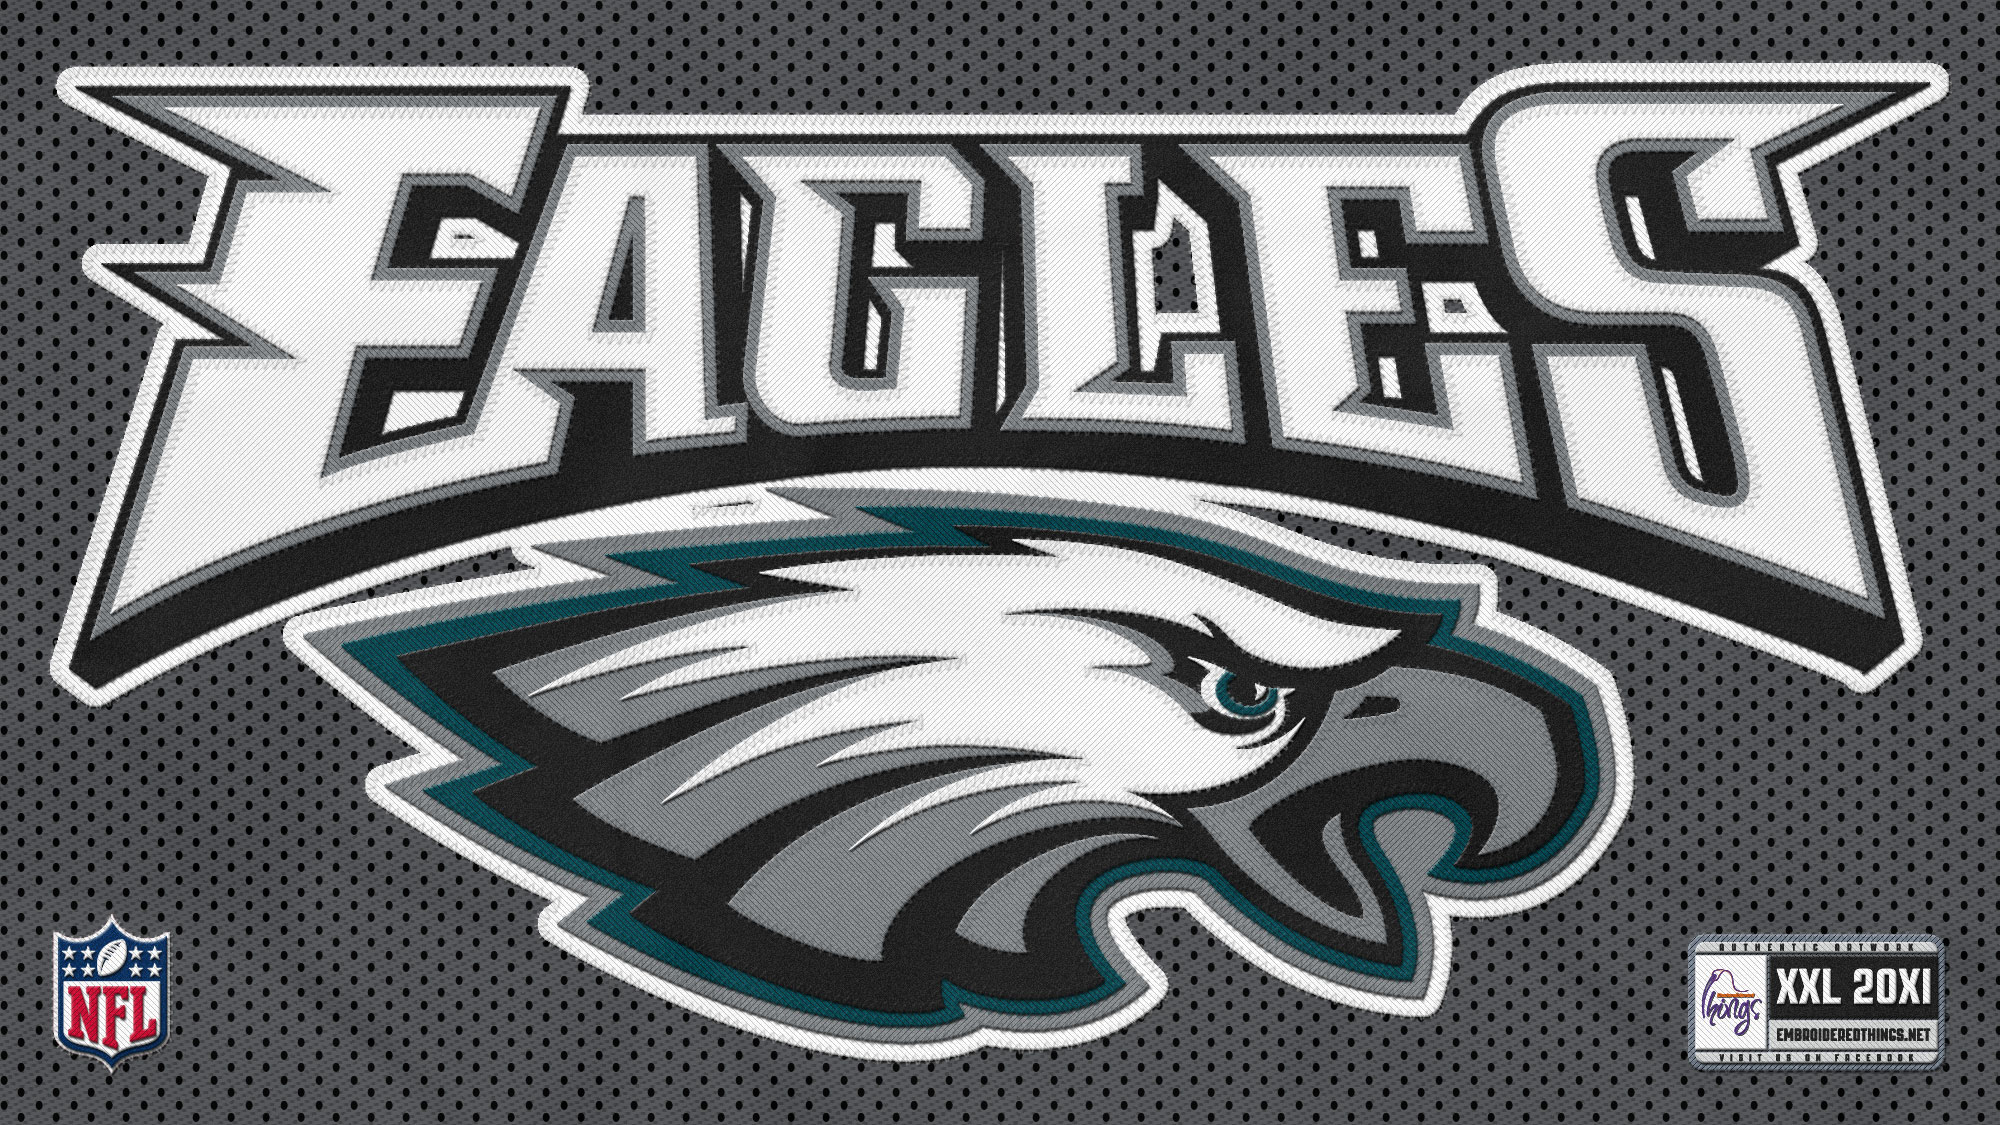 Philadelphia Eagles Logo HD Desktop Wallpaper by wsllpapercom 2000x1125